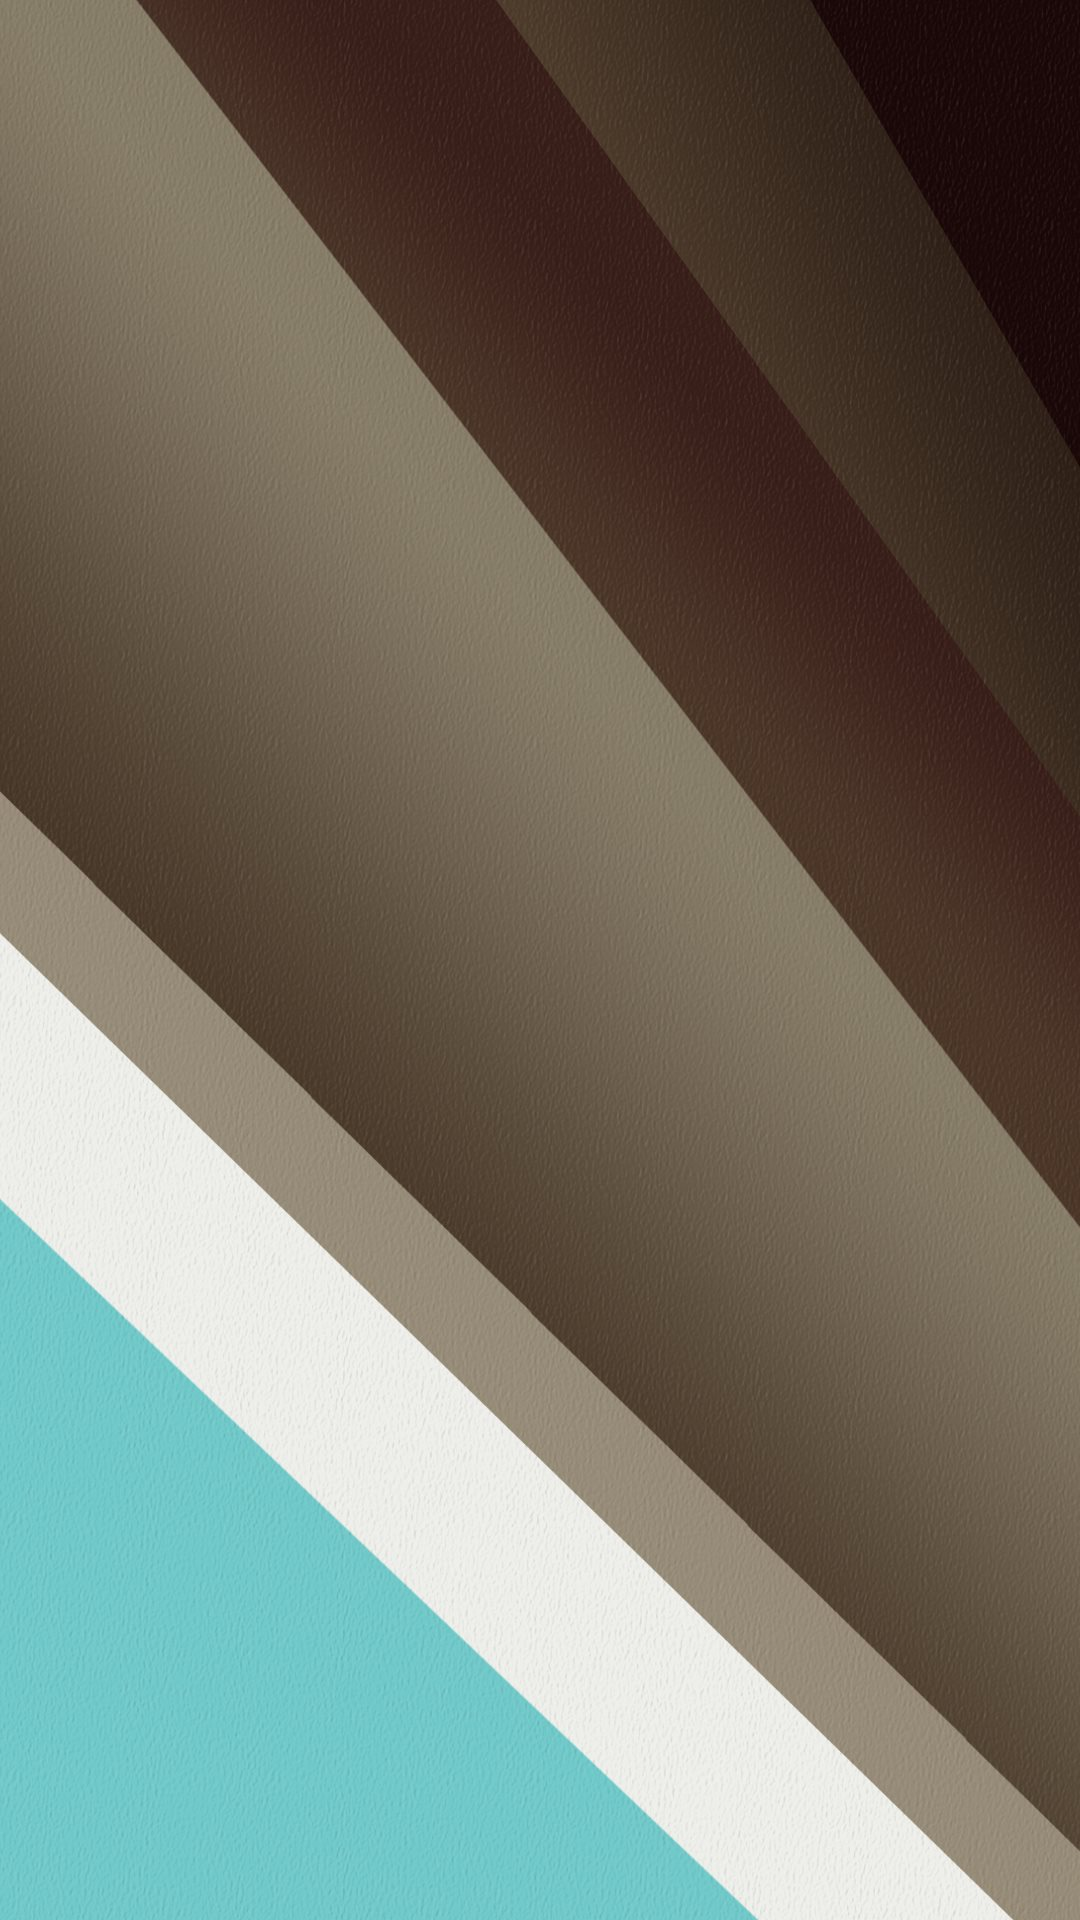 Android L Wallpaper Pro